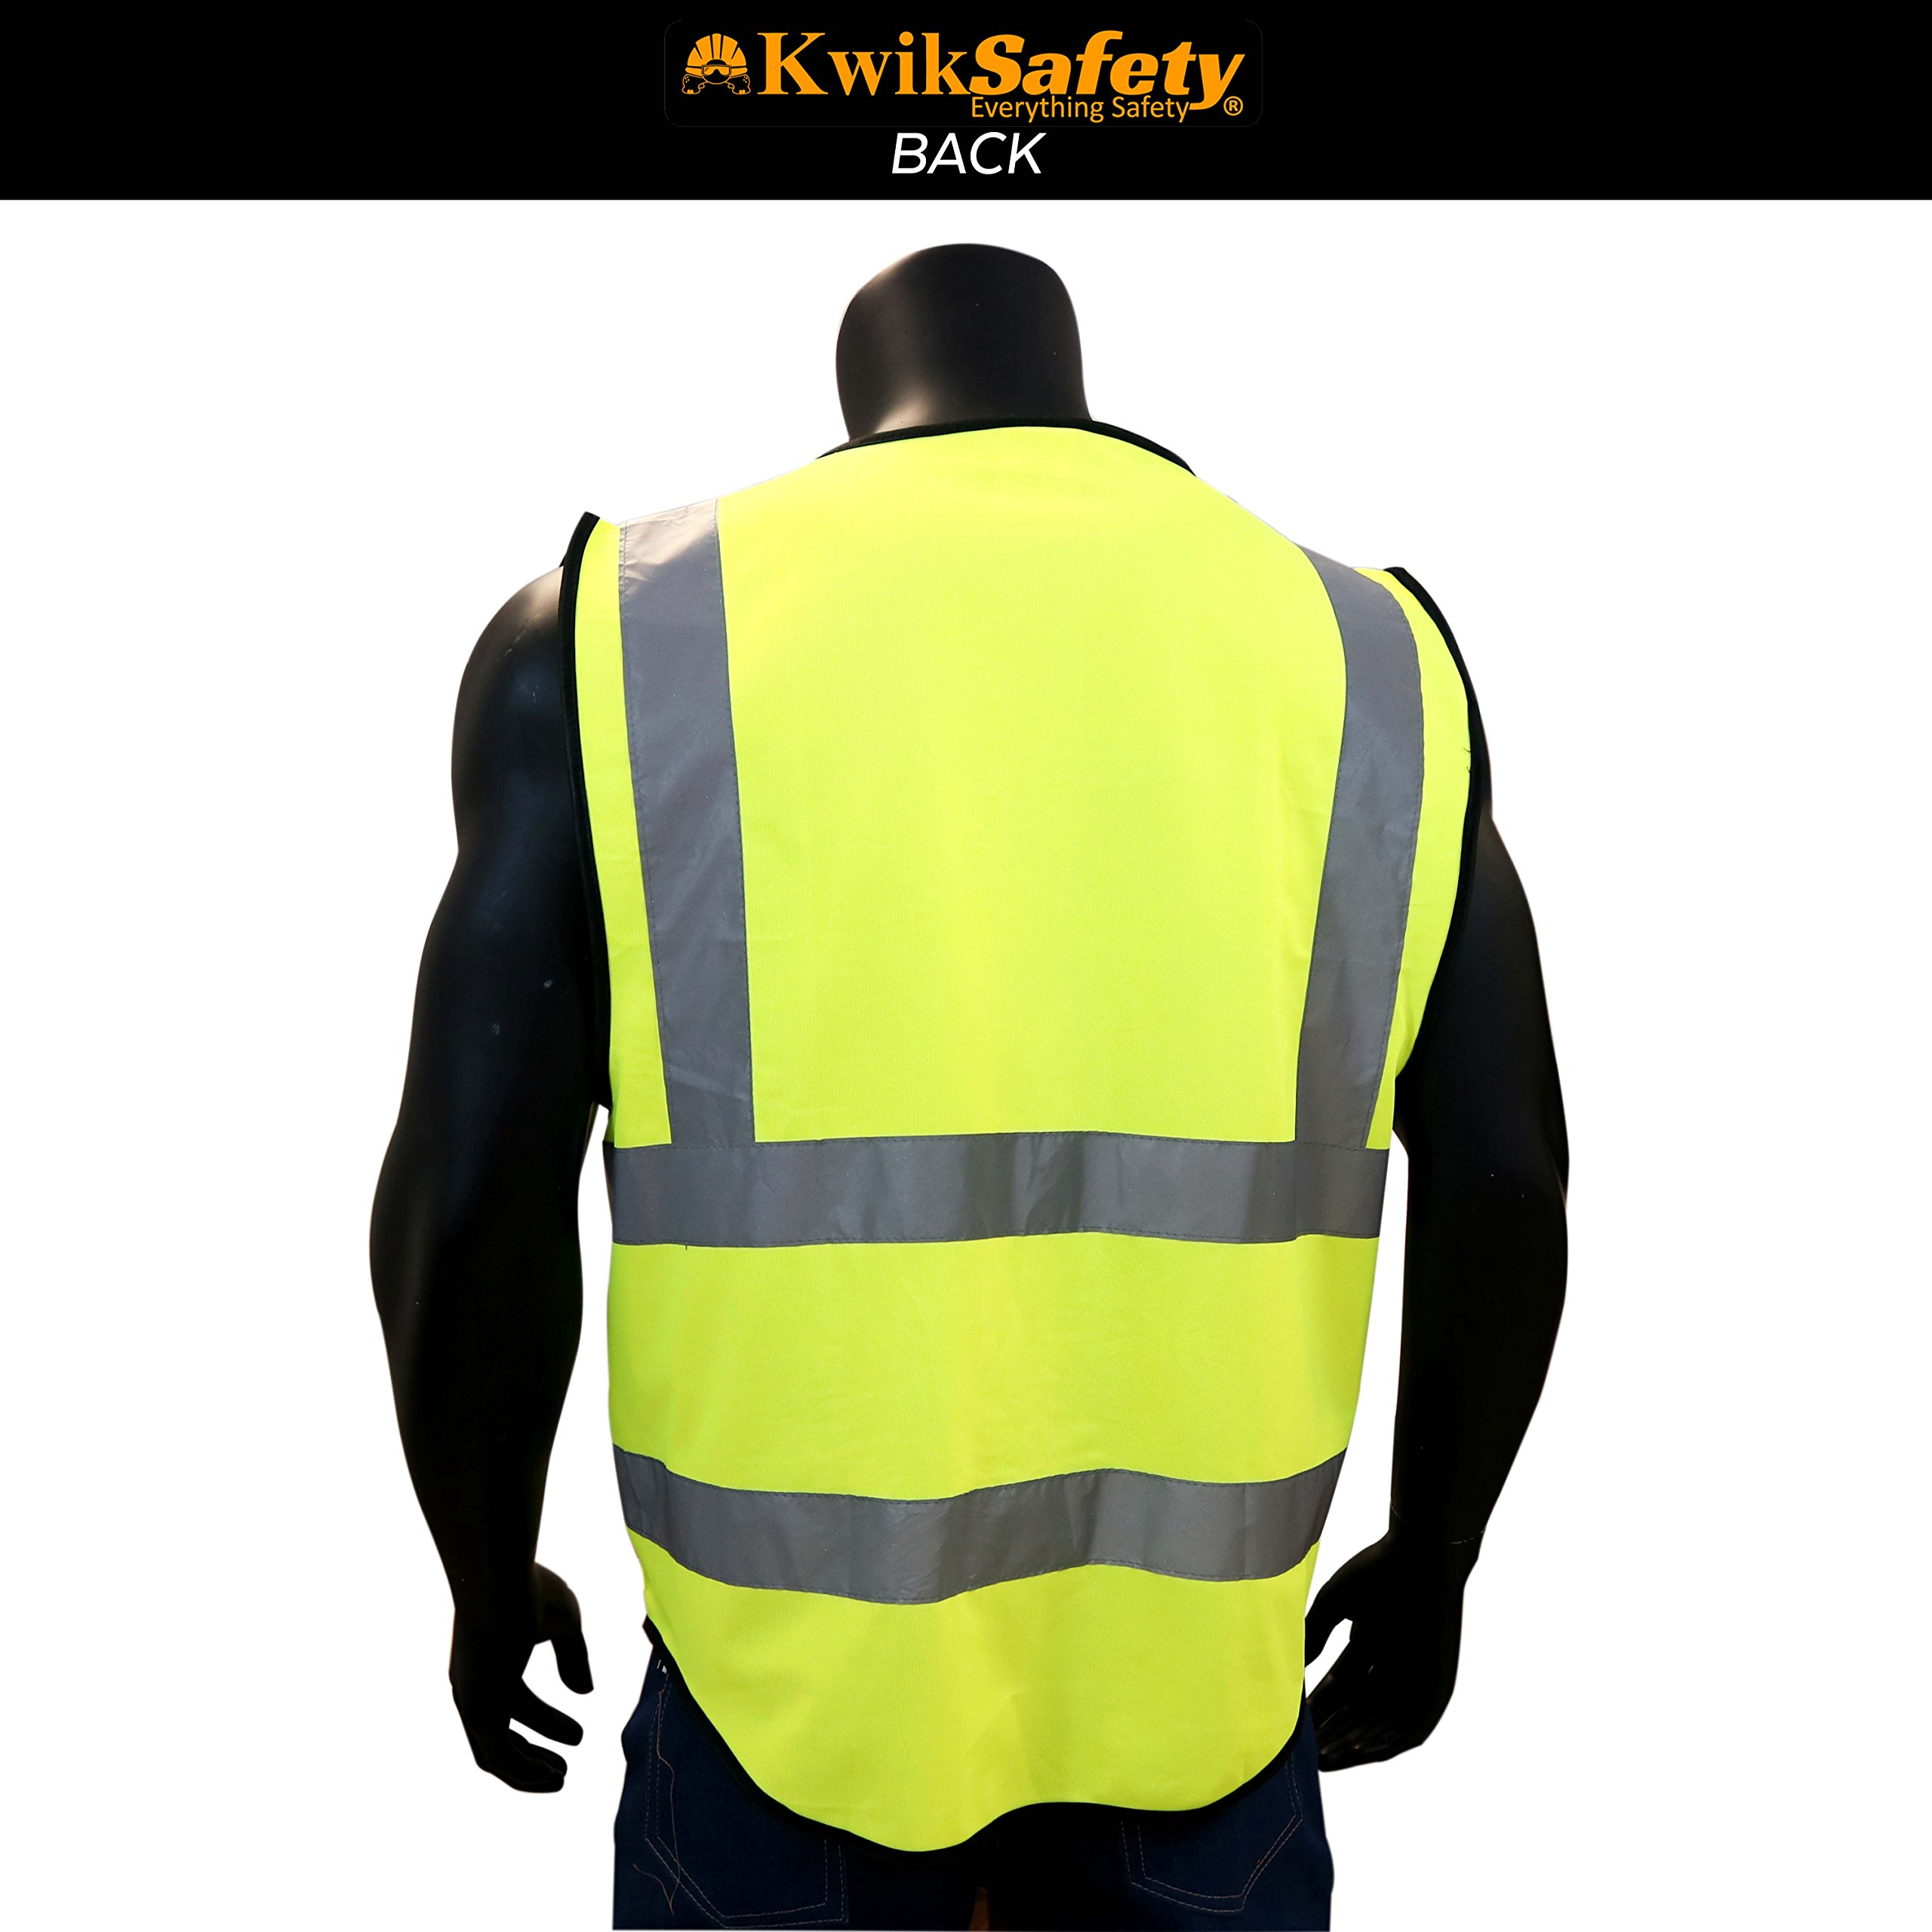 KwikSafety (Charlotte, NC) SUPERIOR (9 Pockets) Class 2 ANSI High Visibility Reflective Safety Vest Heavy Duty Mesh Zipper and Hi Vis Construction Surveying Engineering Work HiViz Men Yellow XX-Large by KwikSafety (Image #3)